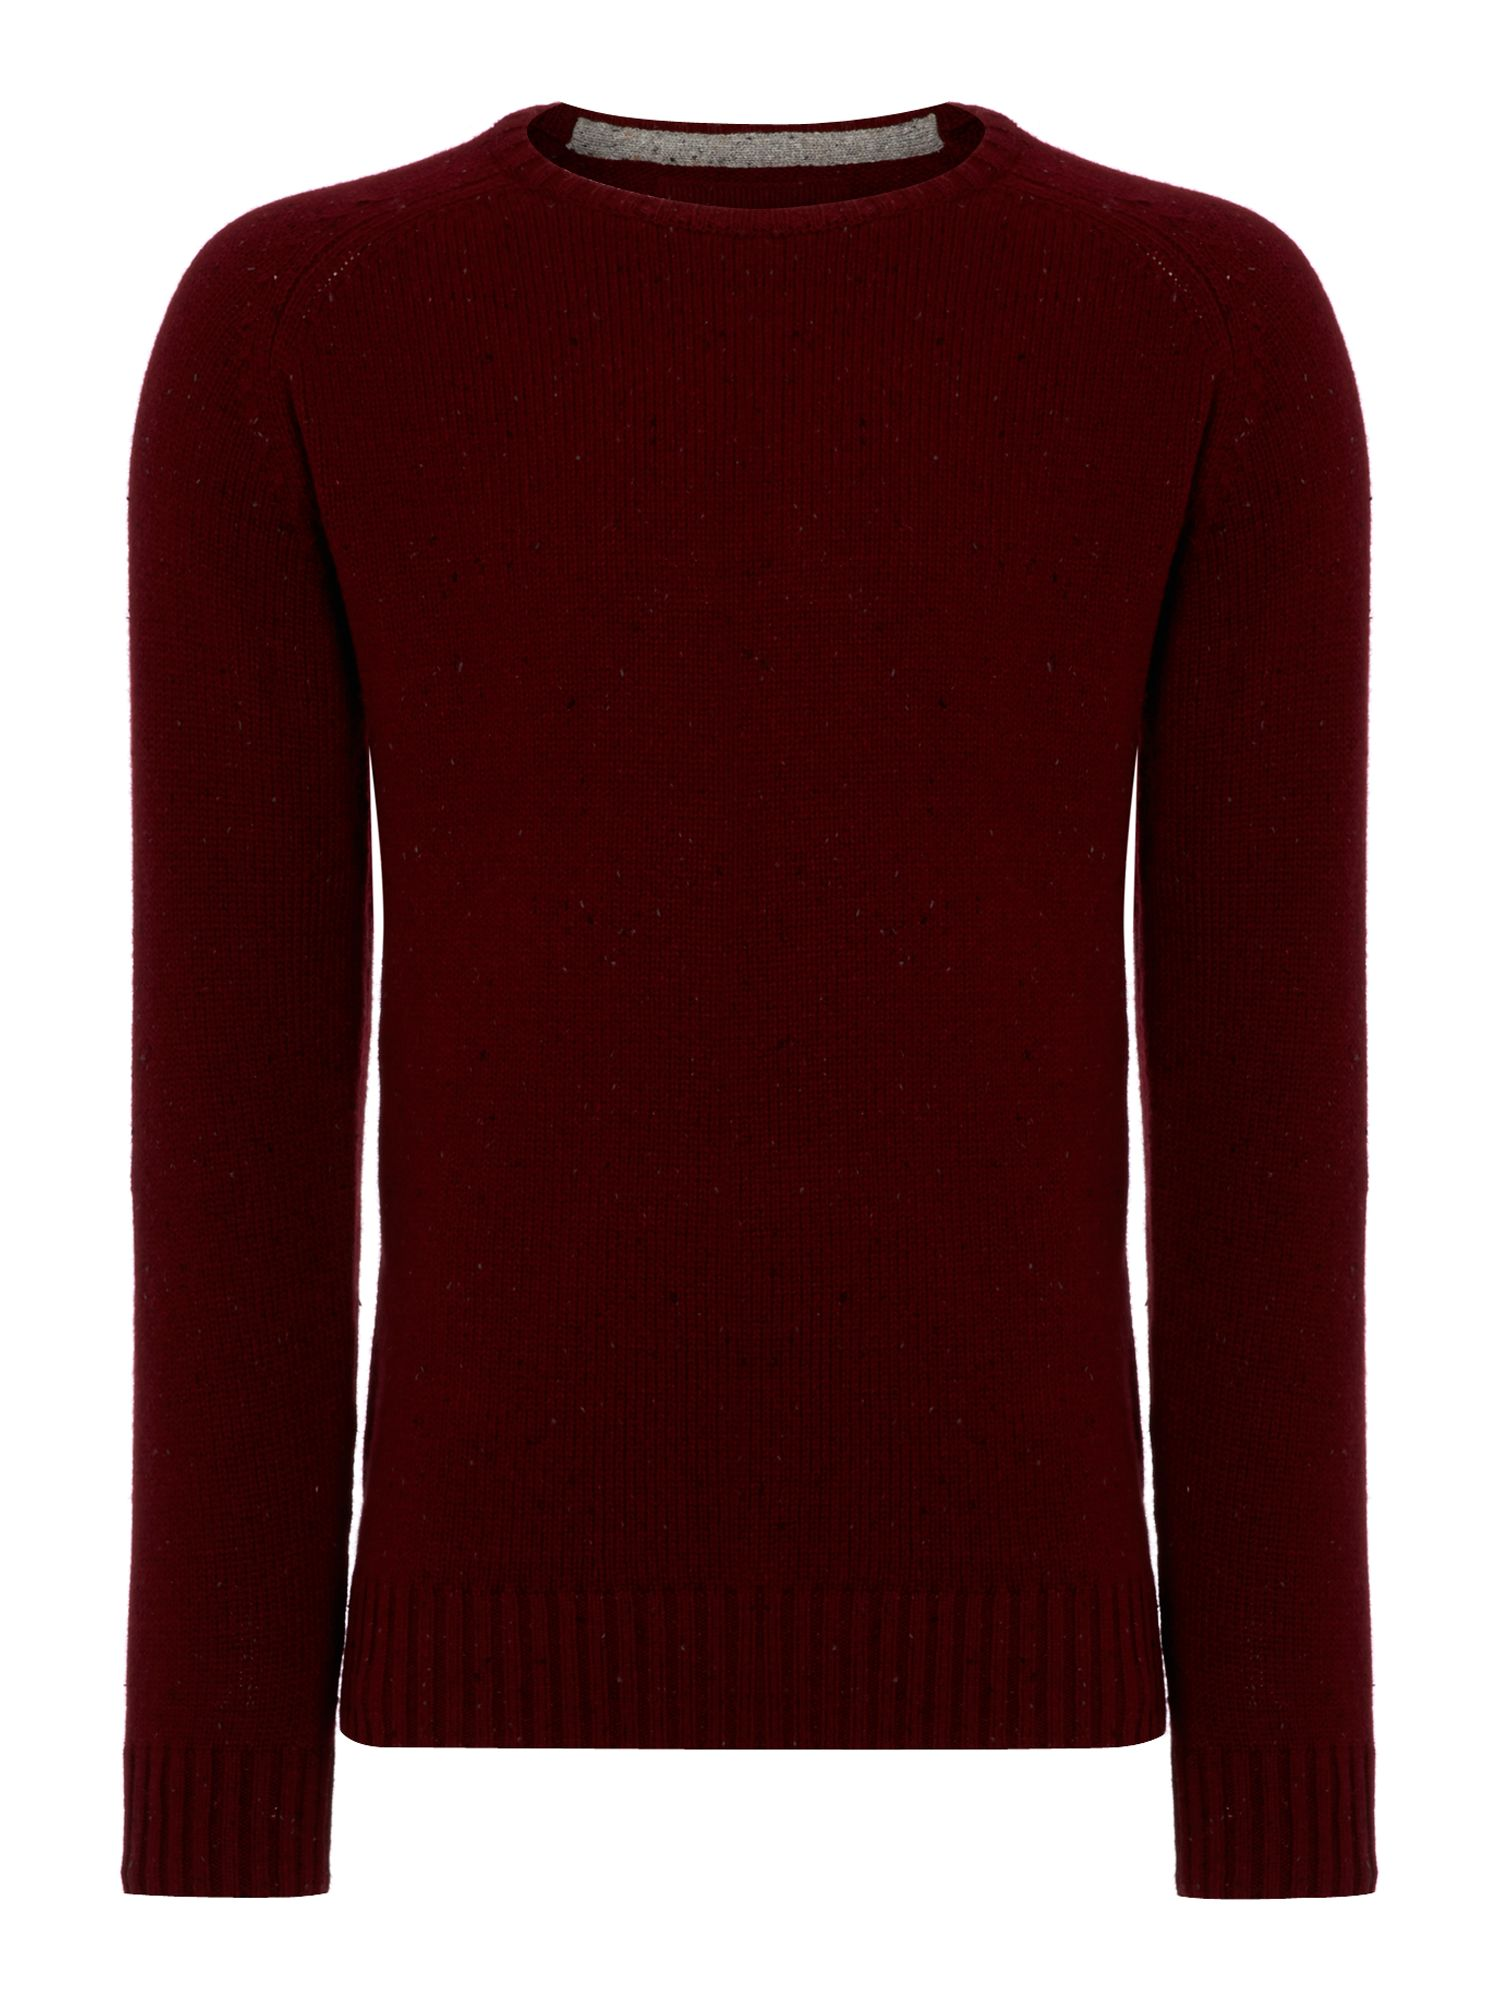 Ennis crew neck jumper